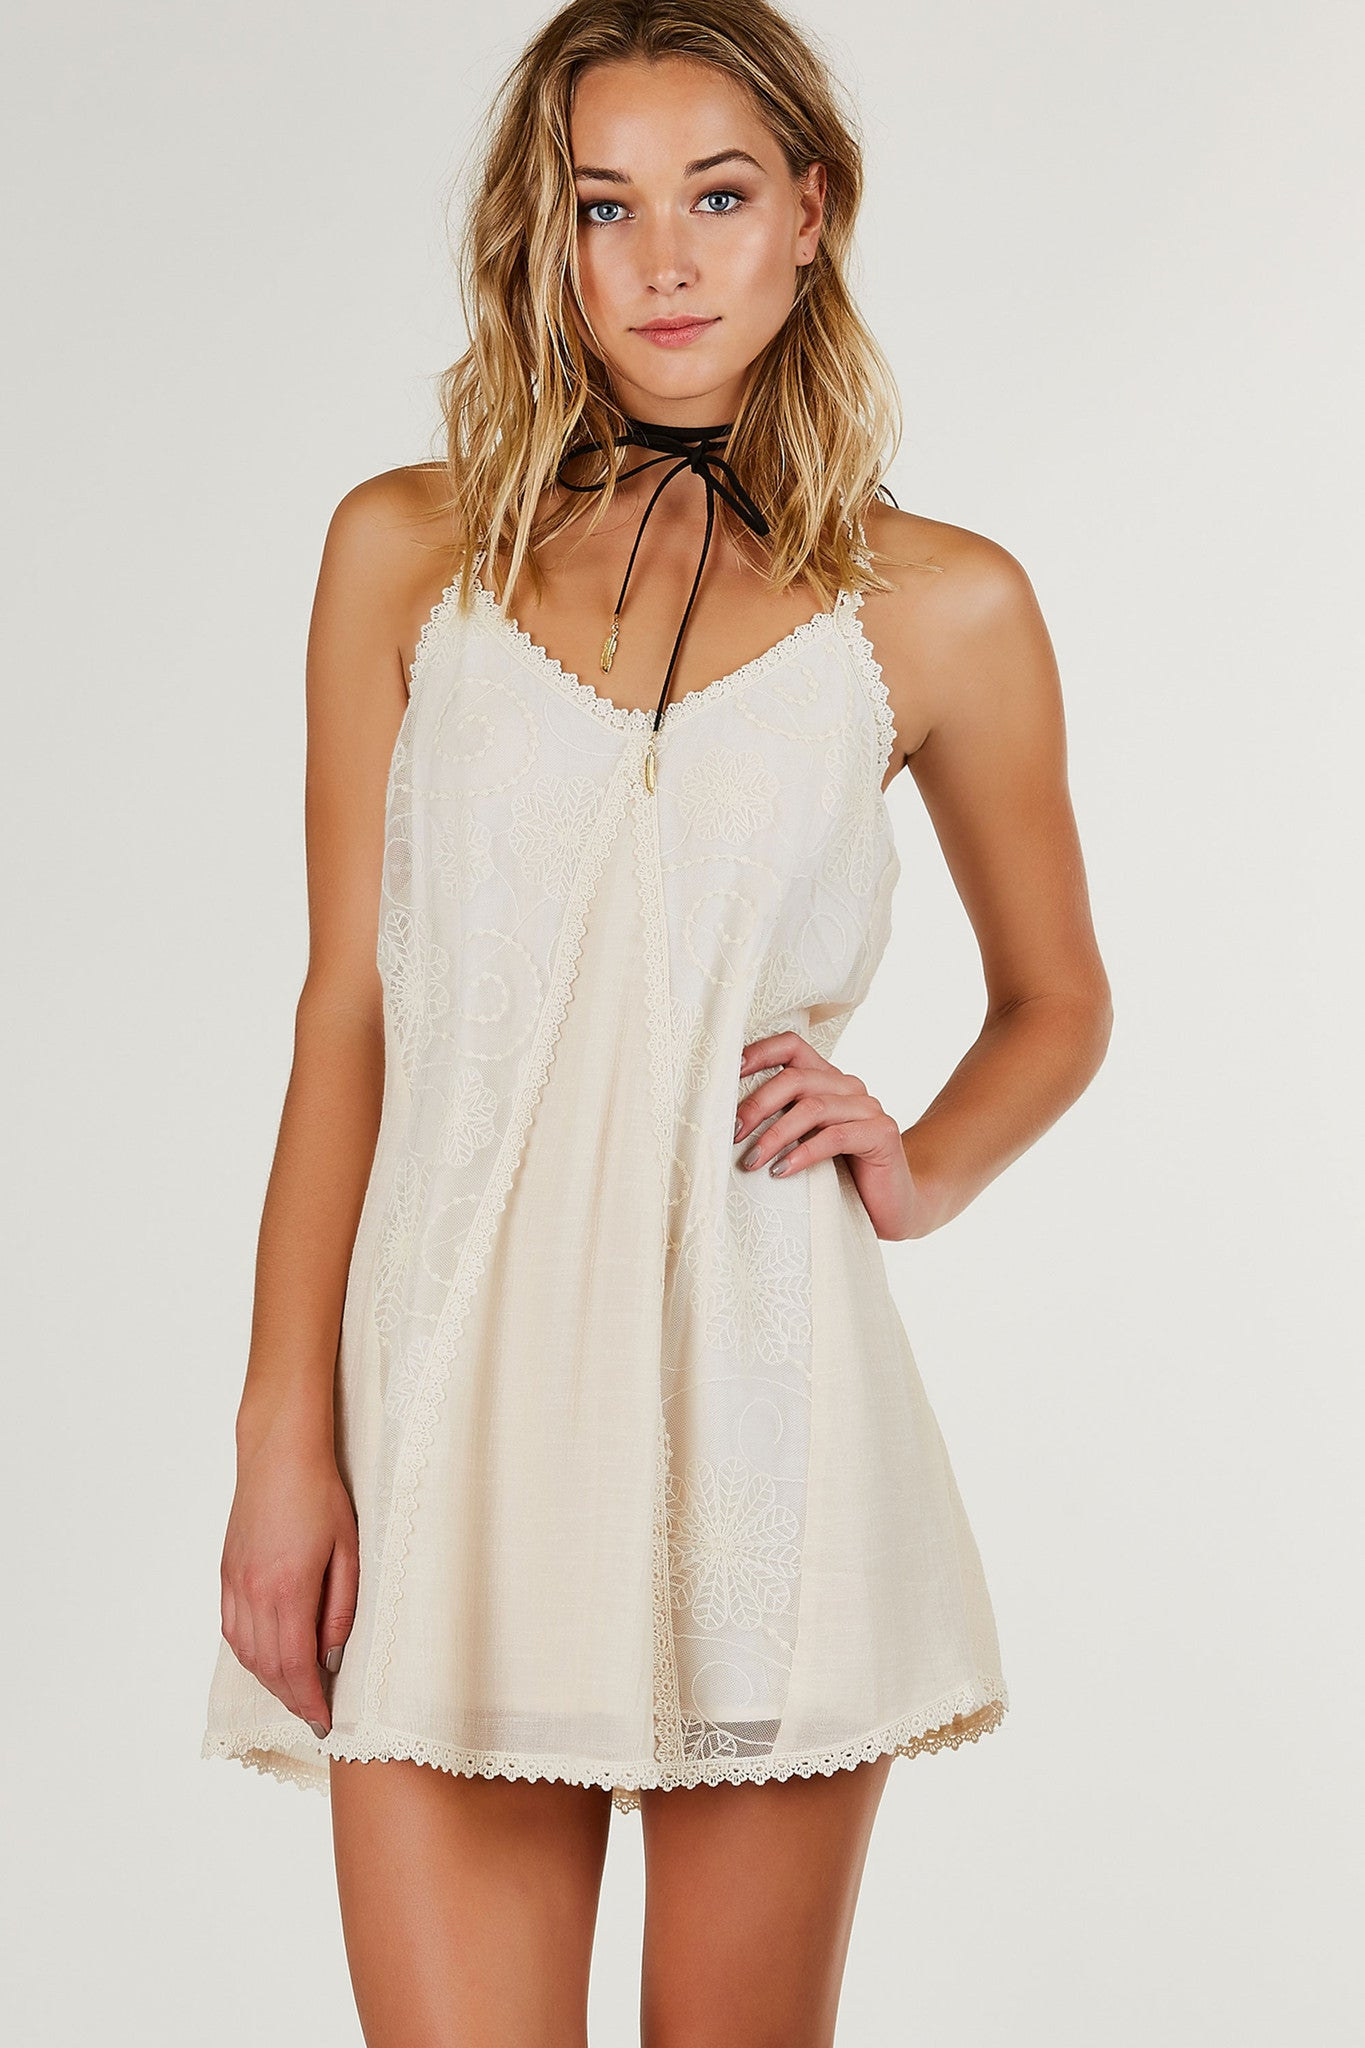 Soft V-neck sleeveless shift dress with intricate lace and crochet detailing throughout. Fully lined with A-line hem.